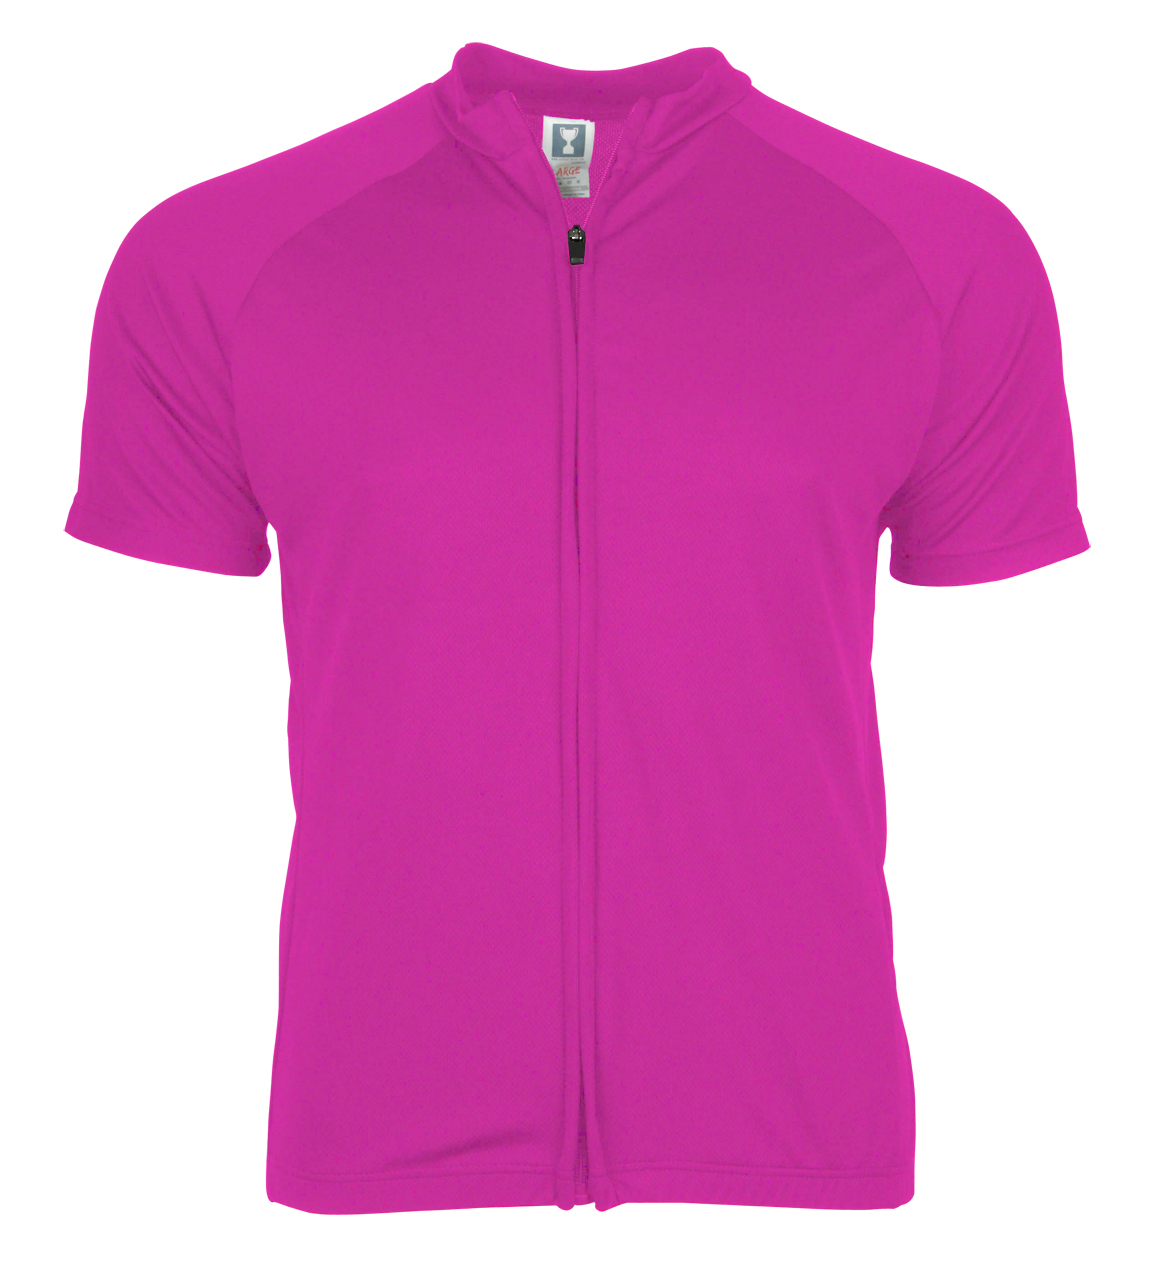 Picture of N3 SPORT Short Sleeve Cycling Jersey